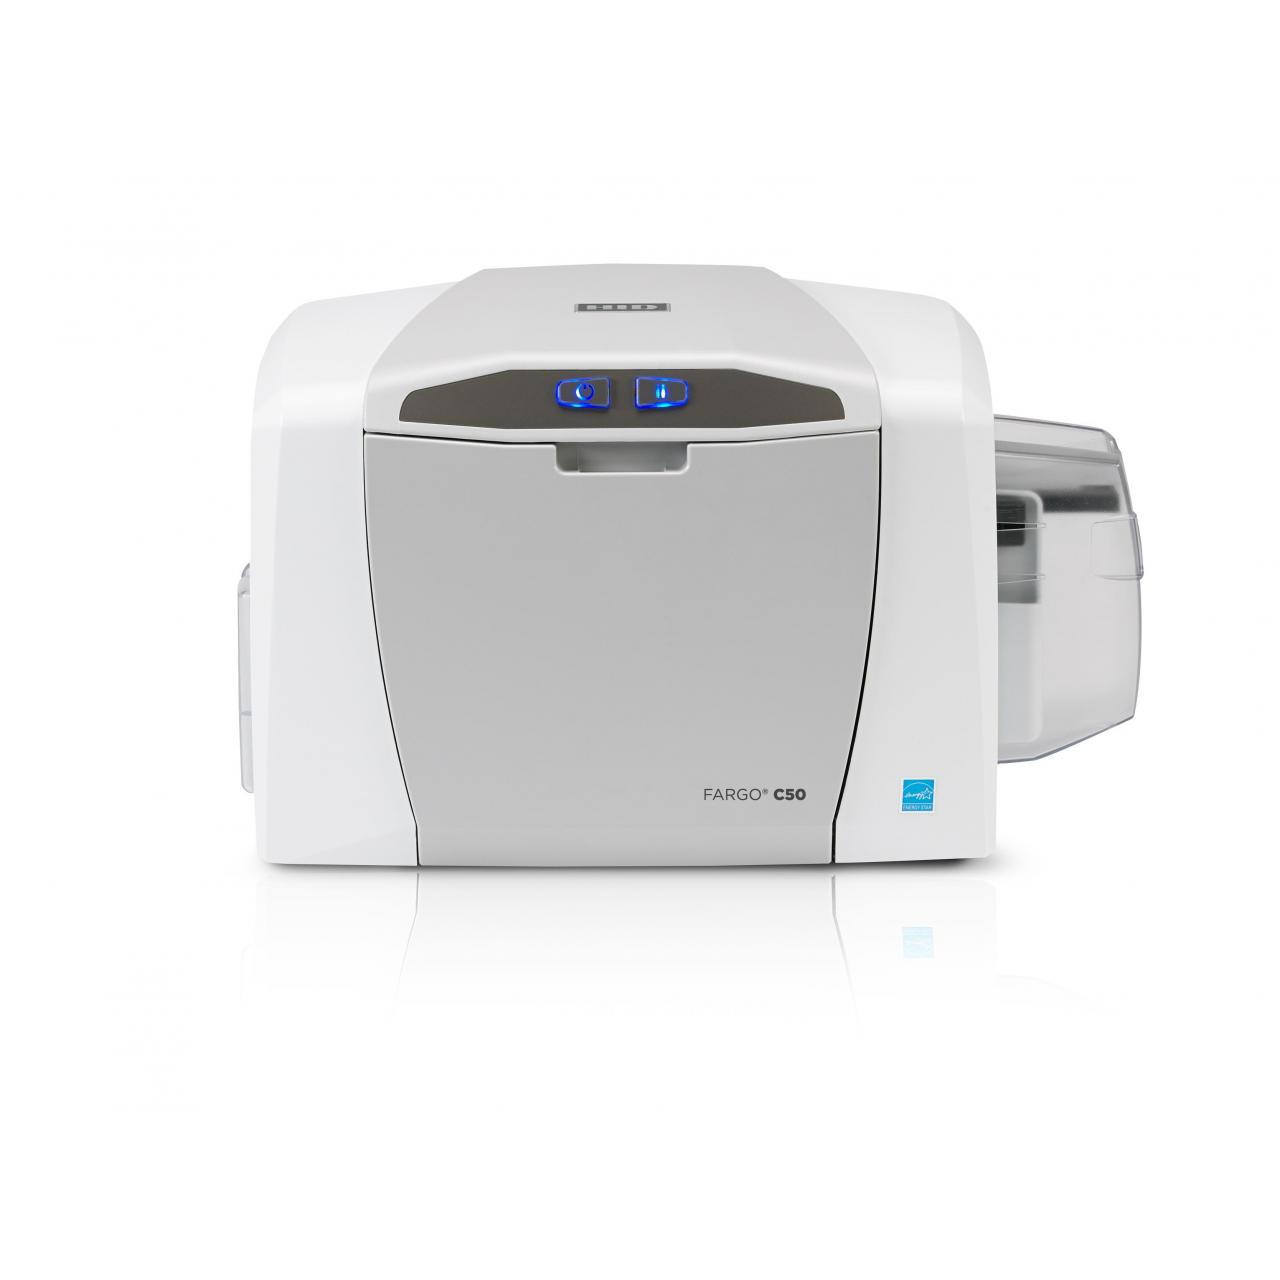 Buy cheap Fargo C50 ID Card Printer from wholesalers